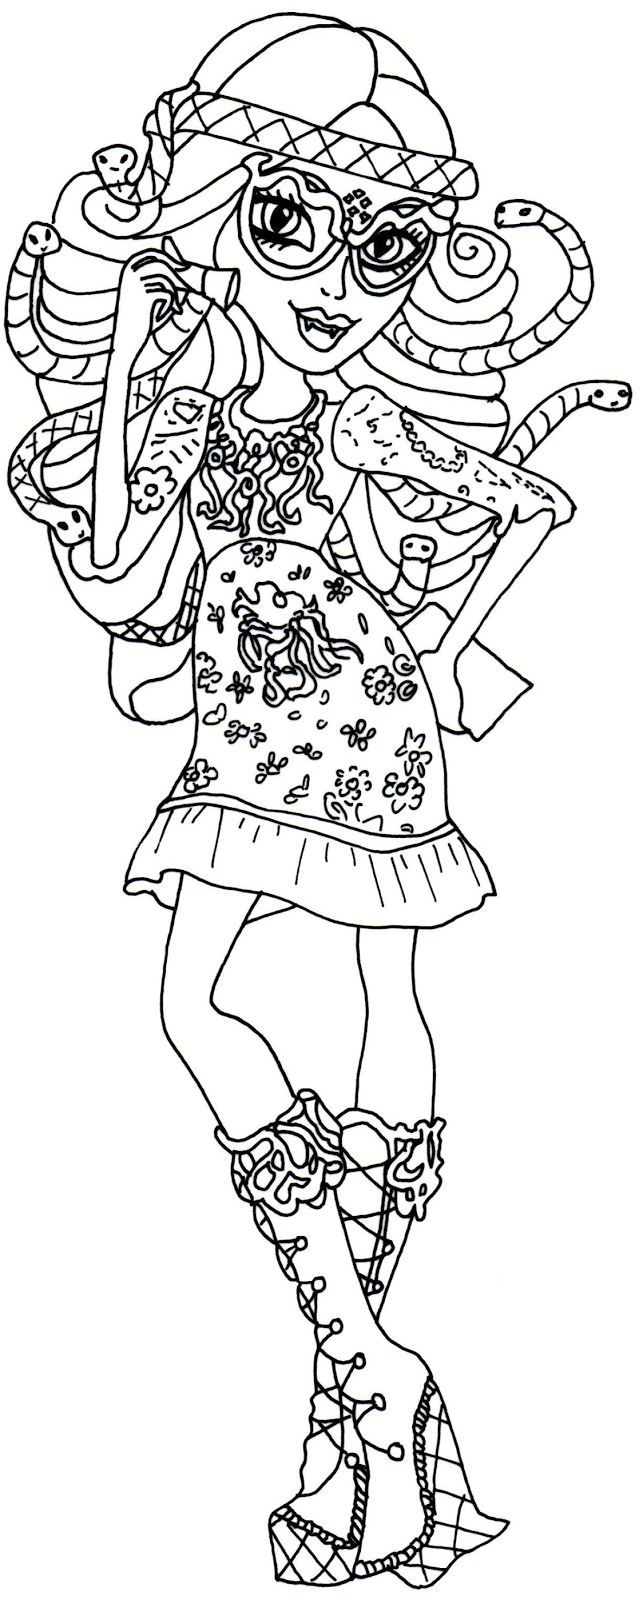 free printable monster high coloring pages viperine gorgon free